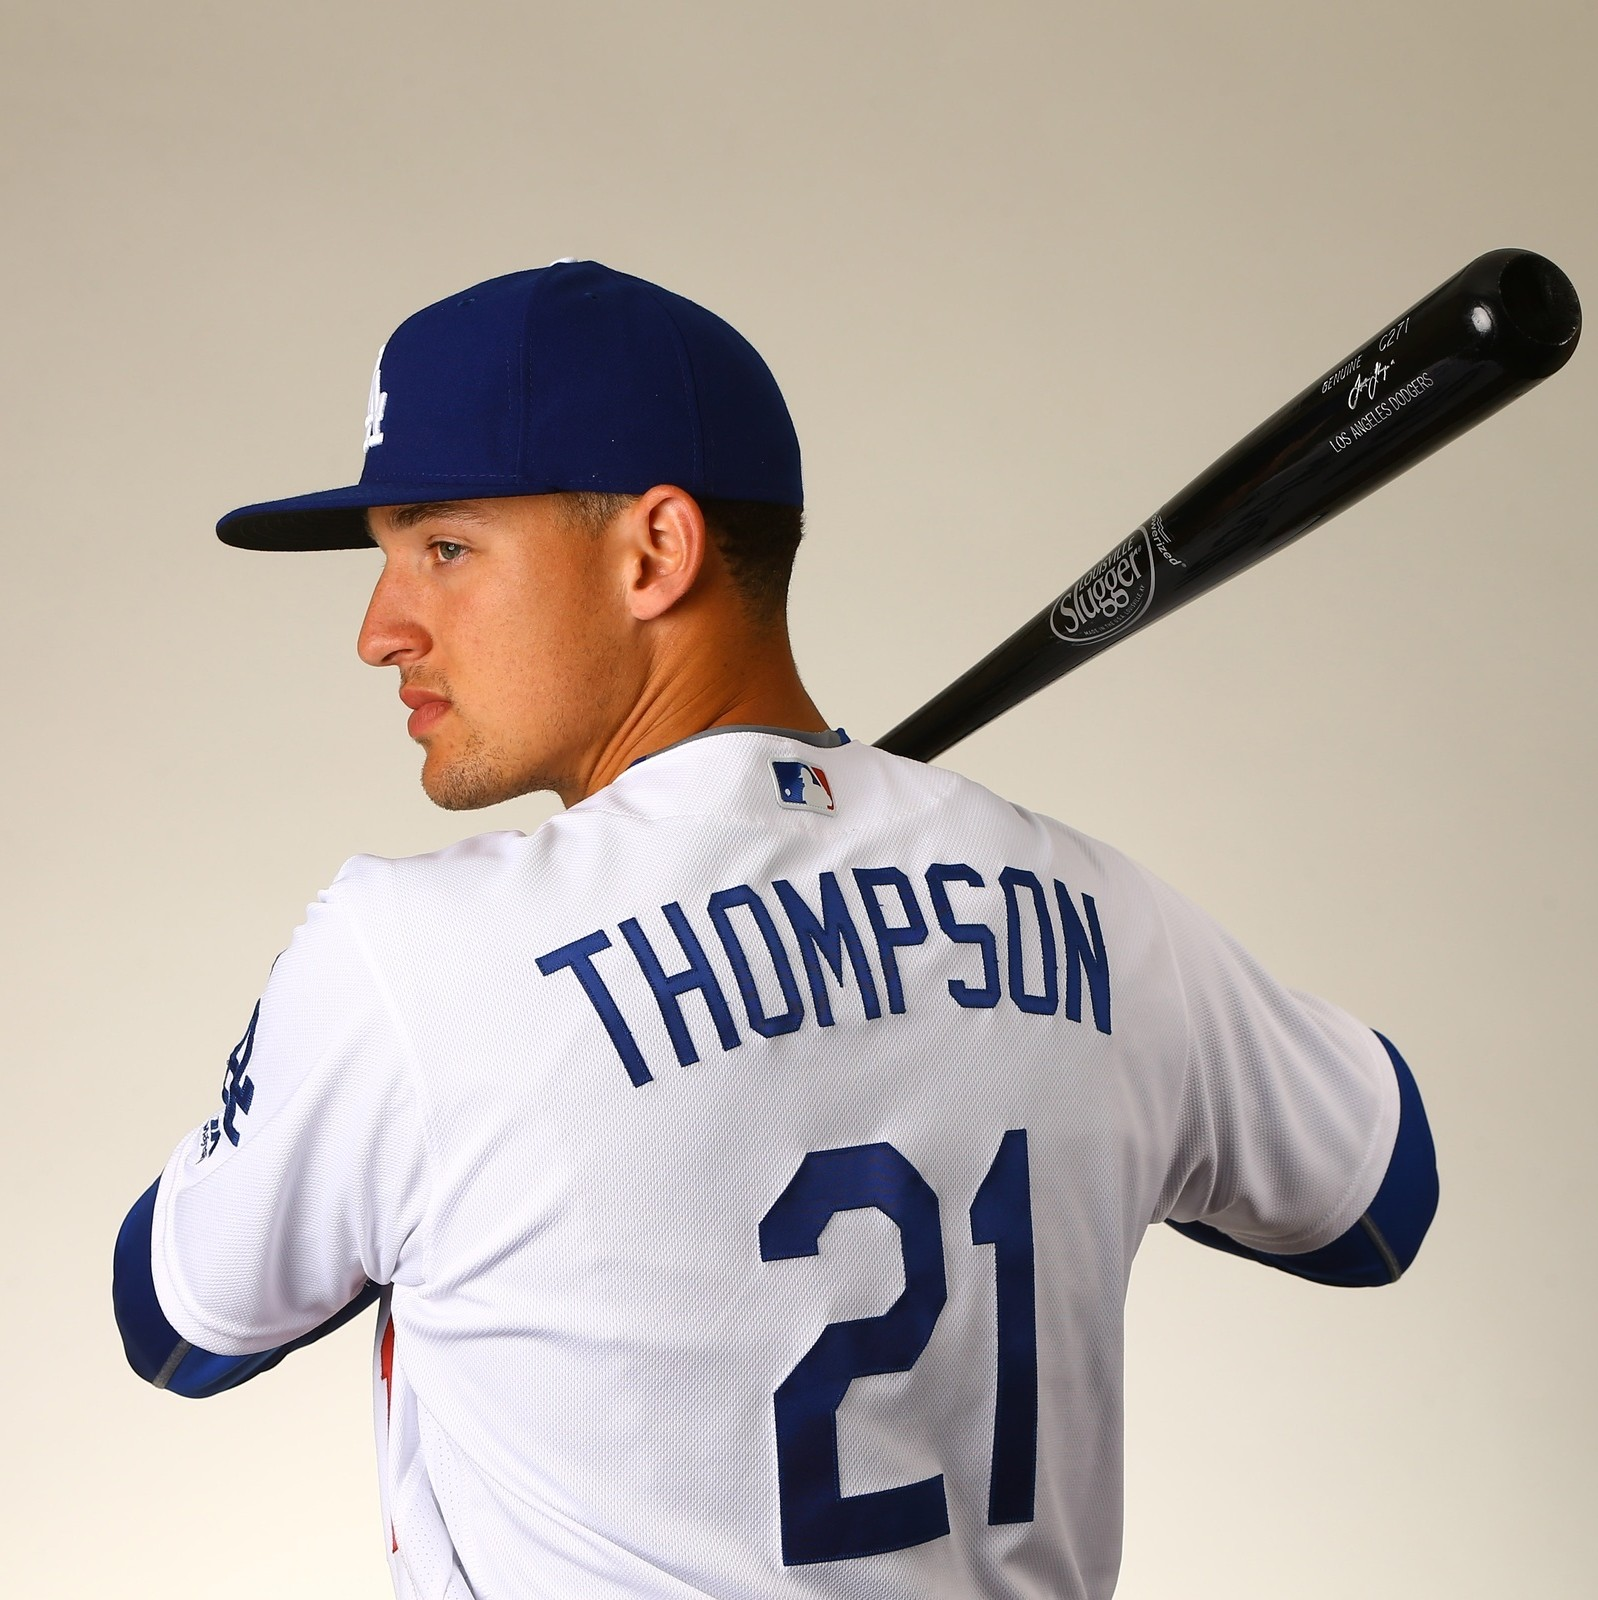 Trayce thompson